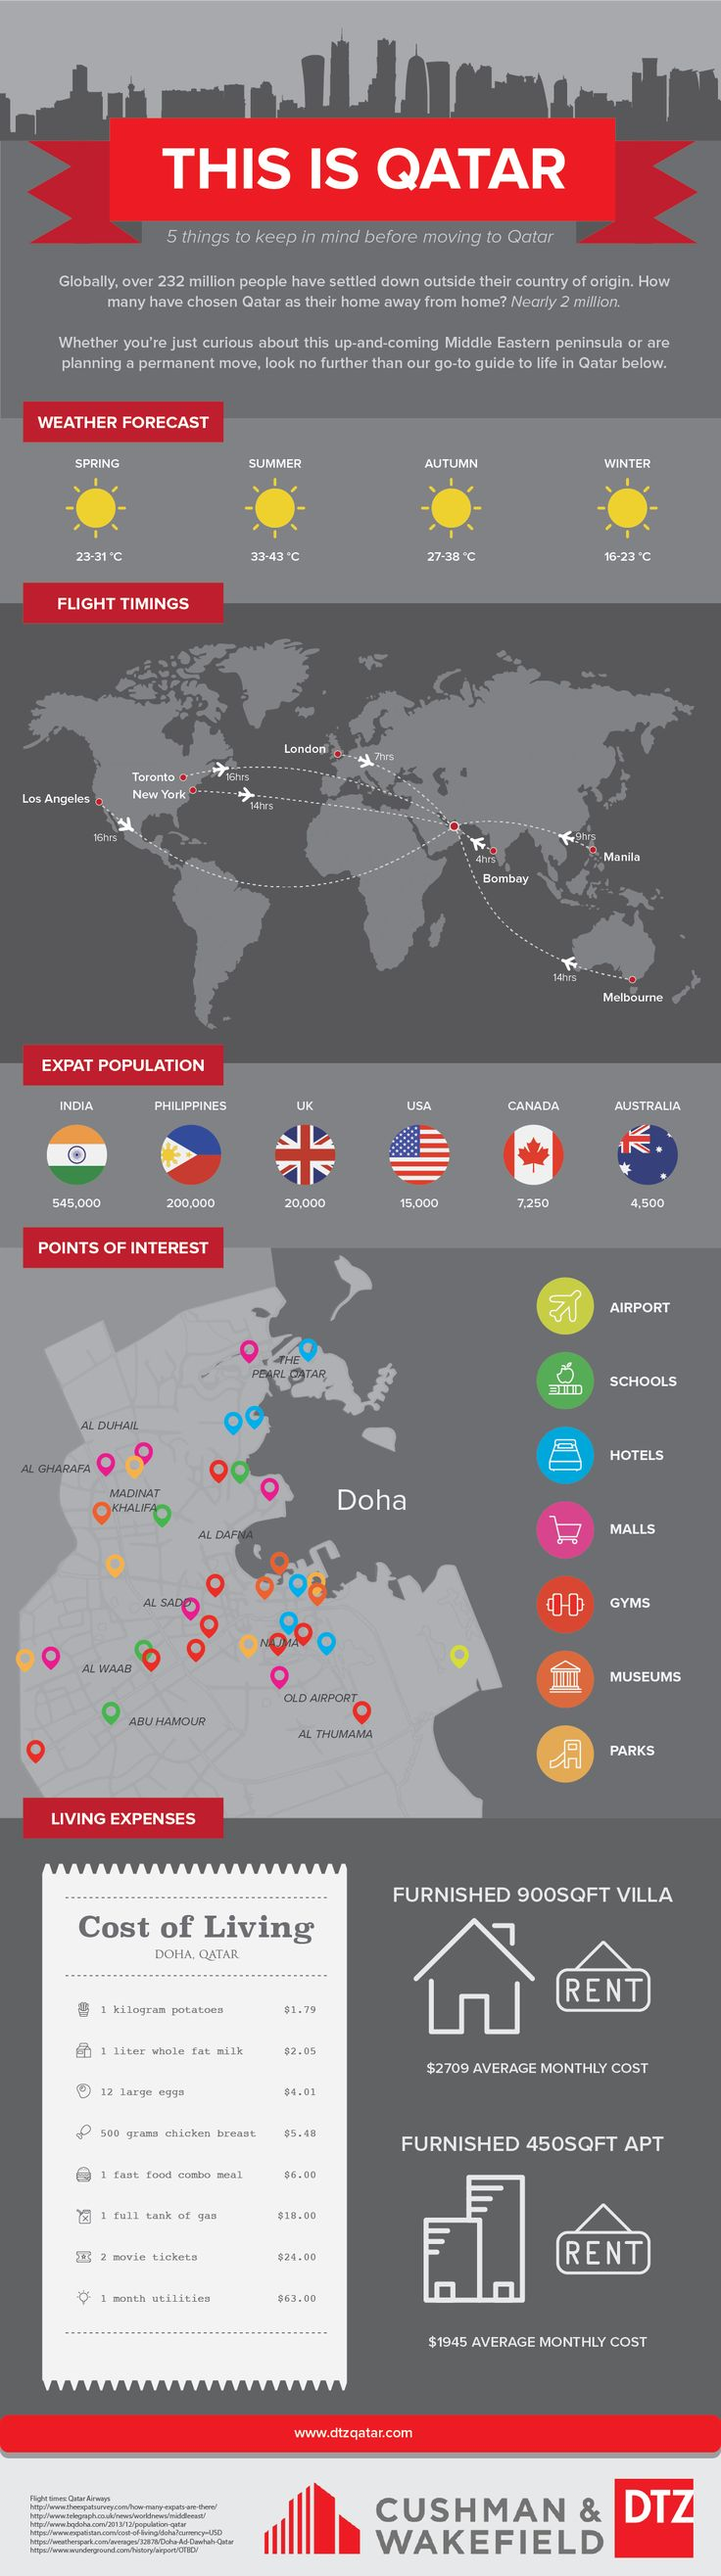 This is Qatar #Infographic #Qatar #Travel